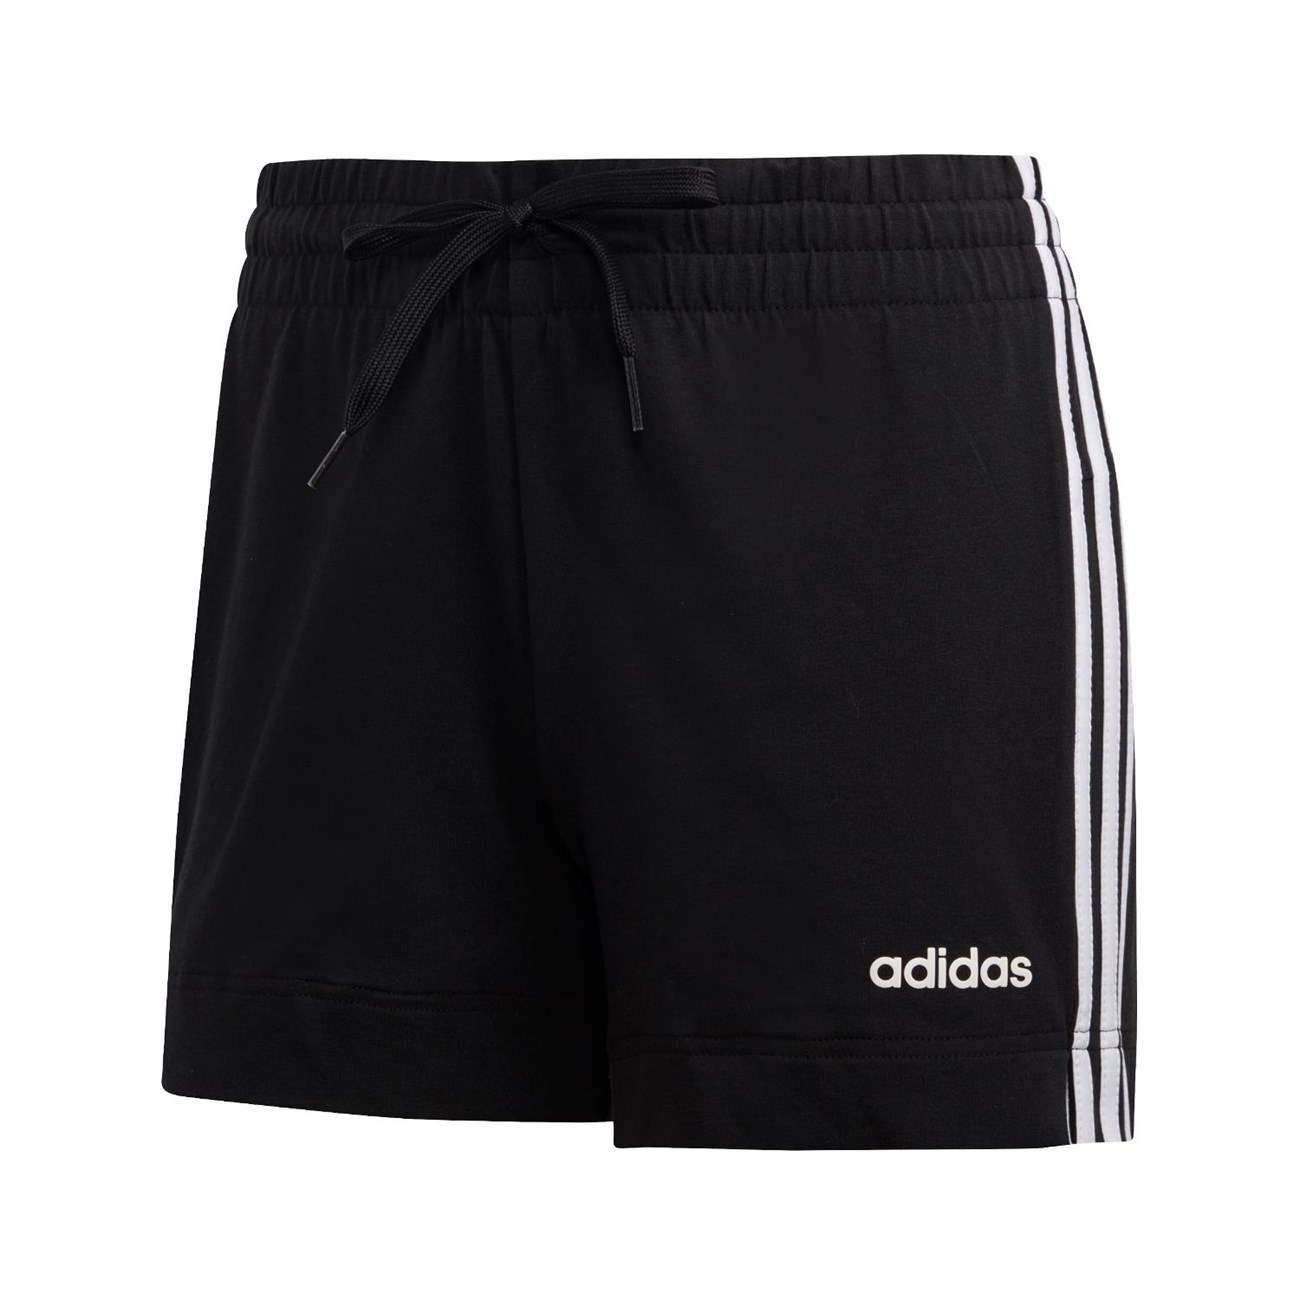 8d5117918d8 ADIDAS ESSENTIALS 3-STRIPES SHORTS < Γυναικεία Σορτς & Βερμούδες ...